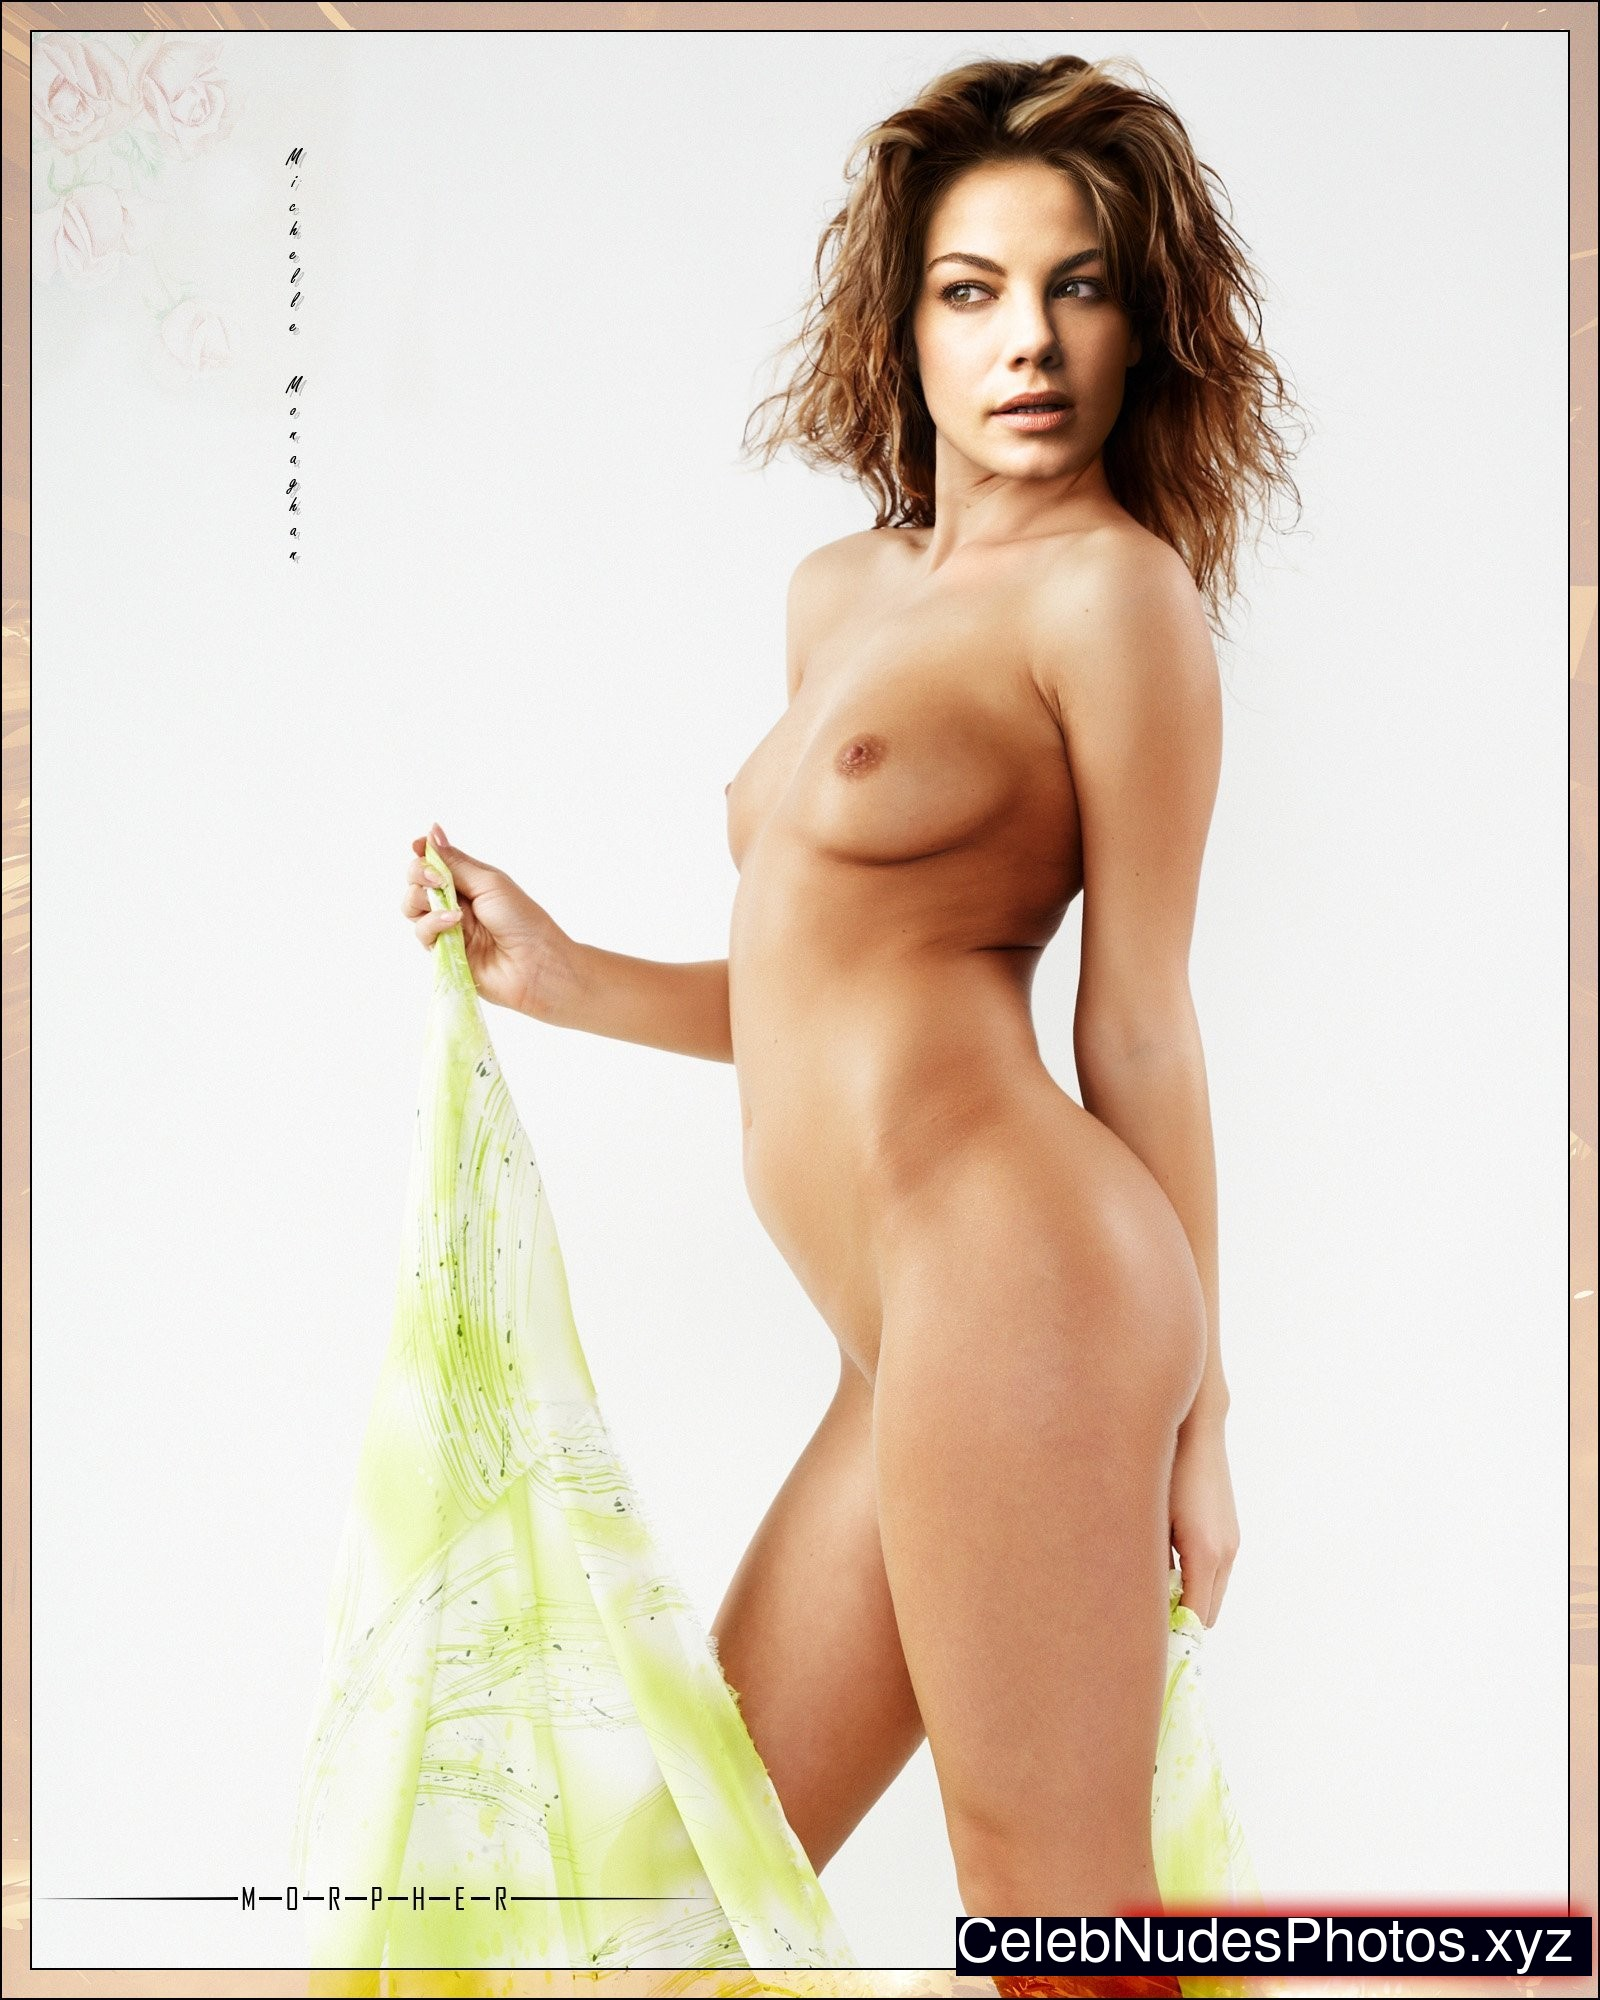 Lustfully viewing michelle monaghan nude we're missing